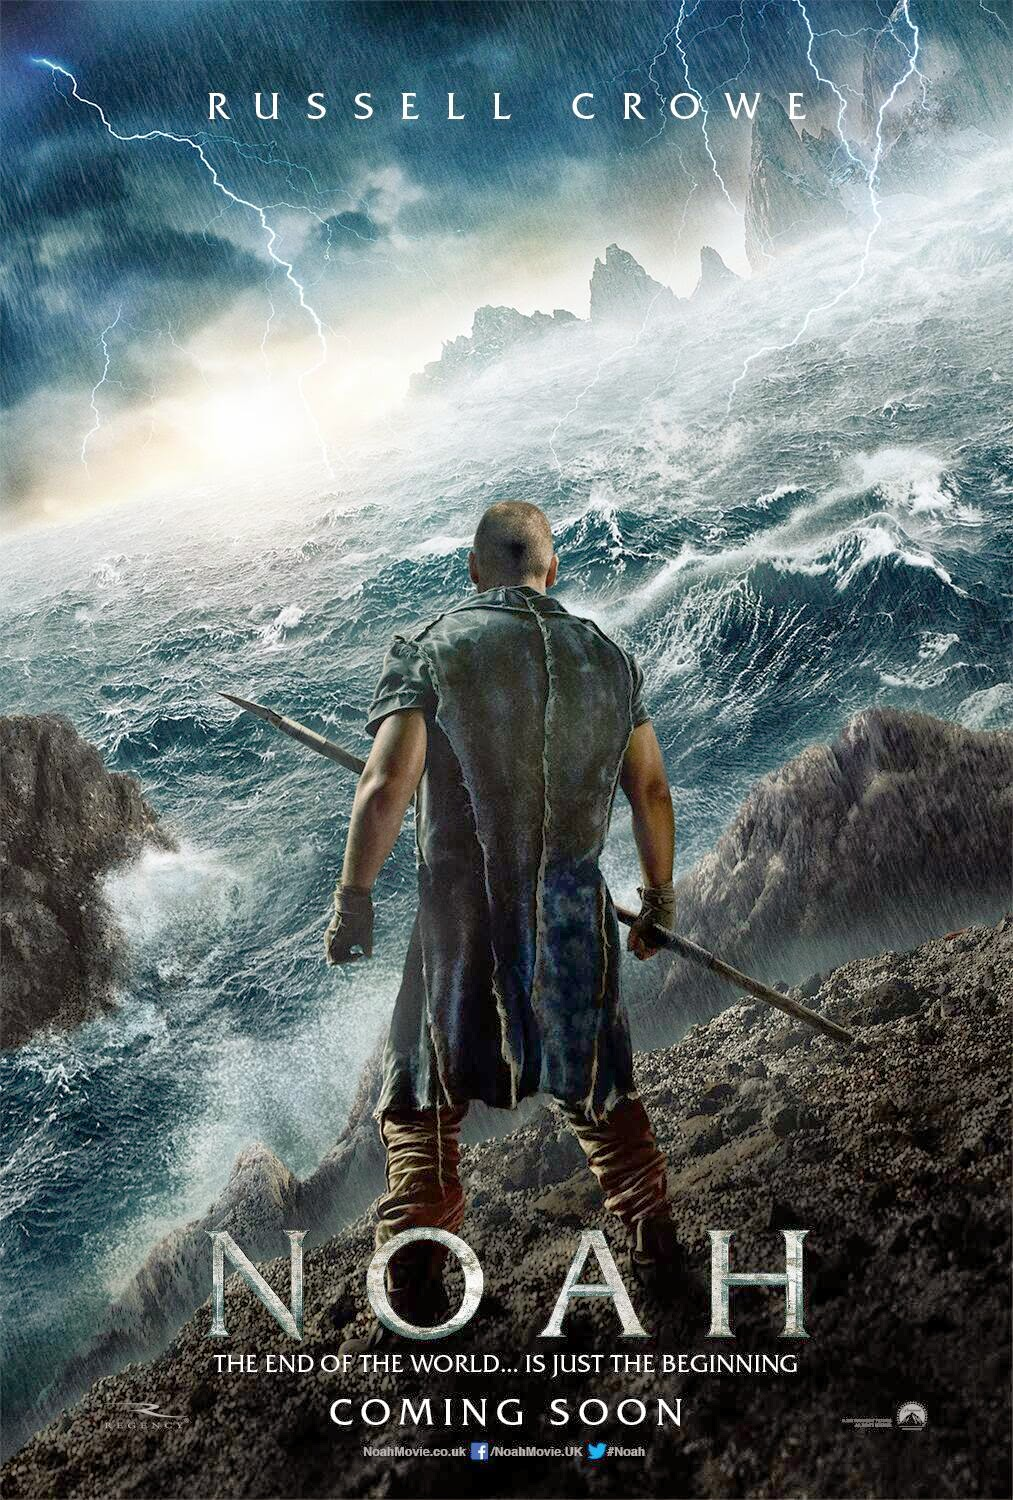 Russell Crowe Noah movie book novelization